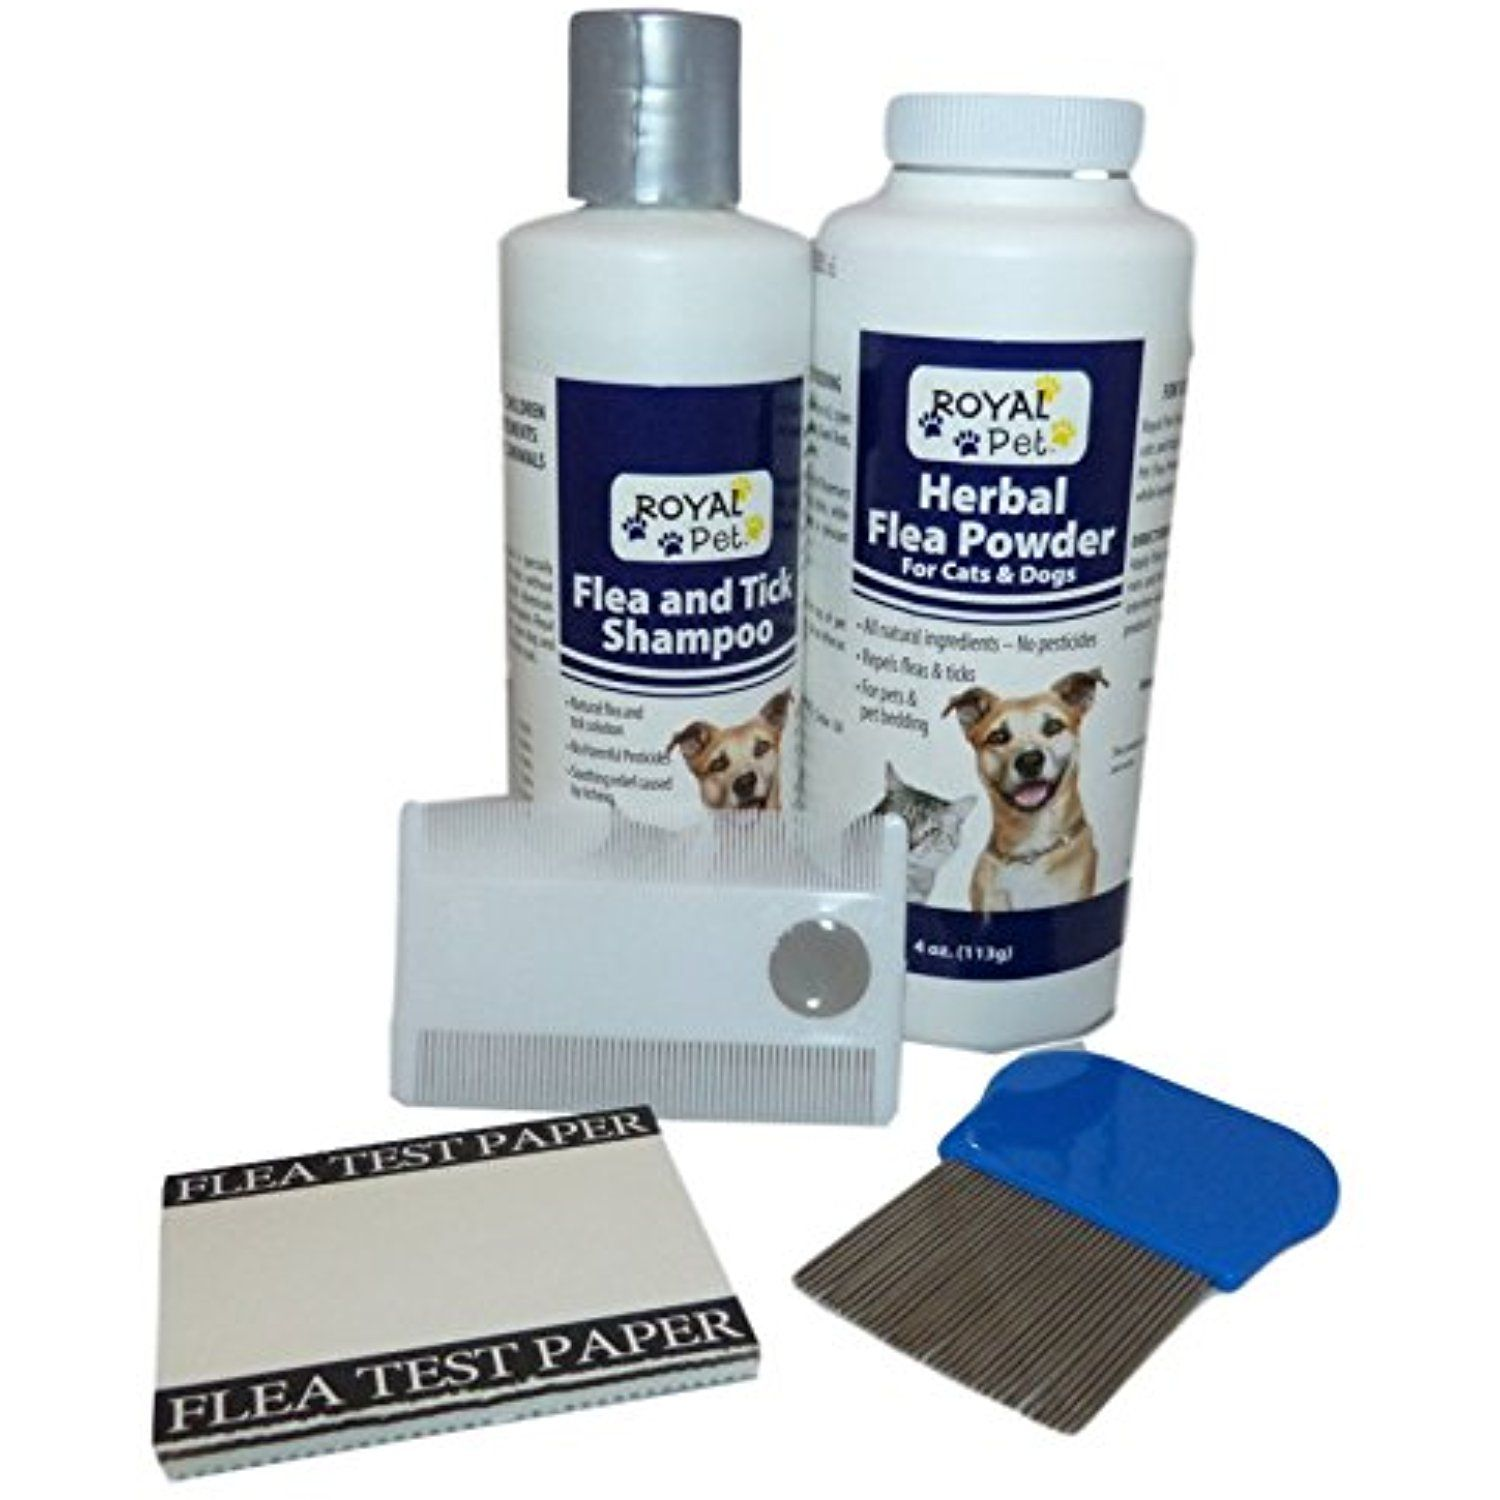 All Natural Flea Prevention Bundle For Cats And Dogs Royal Pet Natural Flea And Tick Shampoo Cats With Images Cat Fleas Flea Powder Dog Shampoo